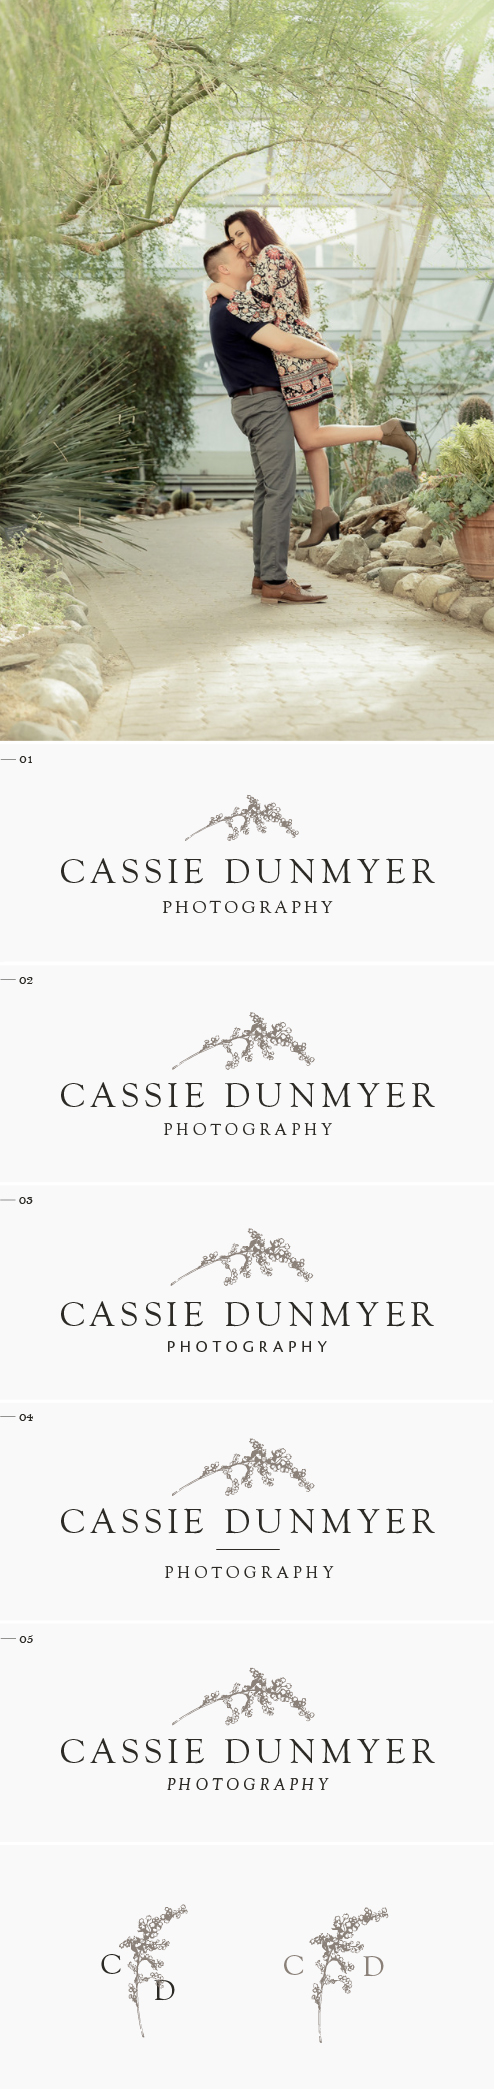 Cassie-Dunmyer-Photography-Logo-Round-Three.jpg